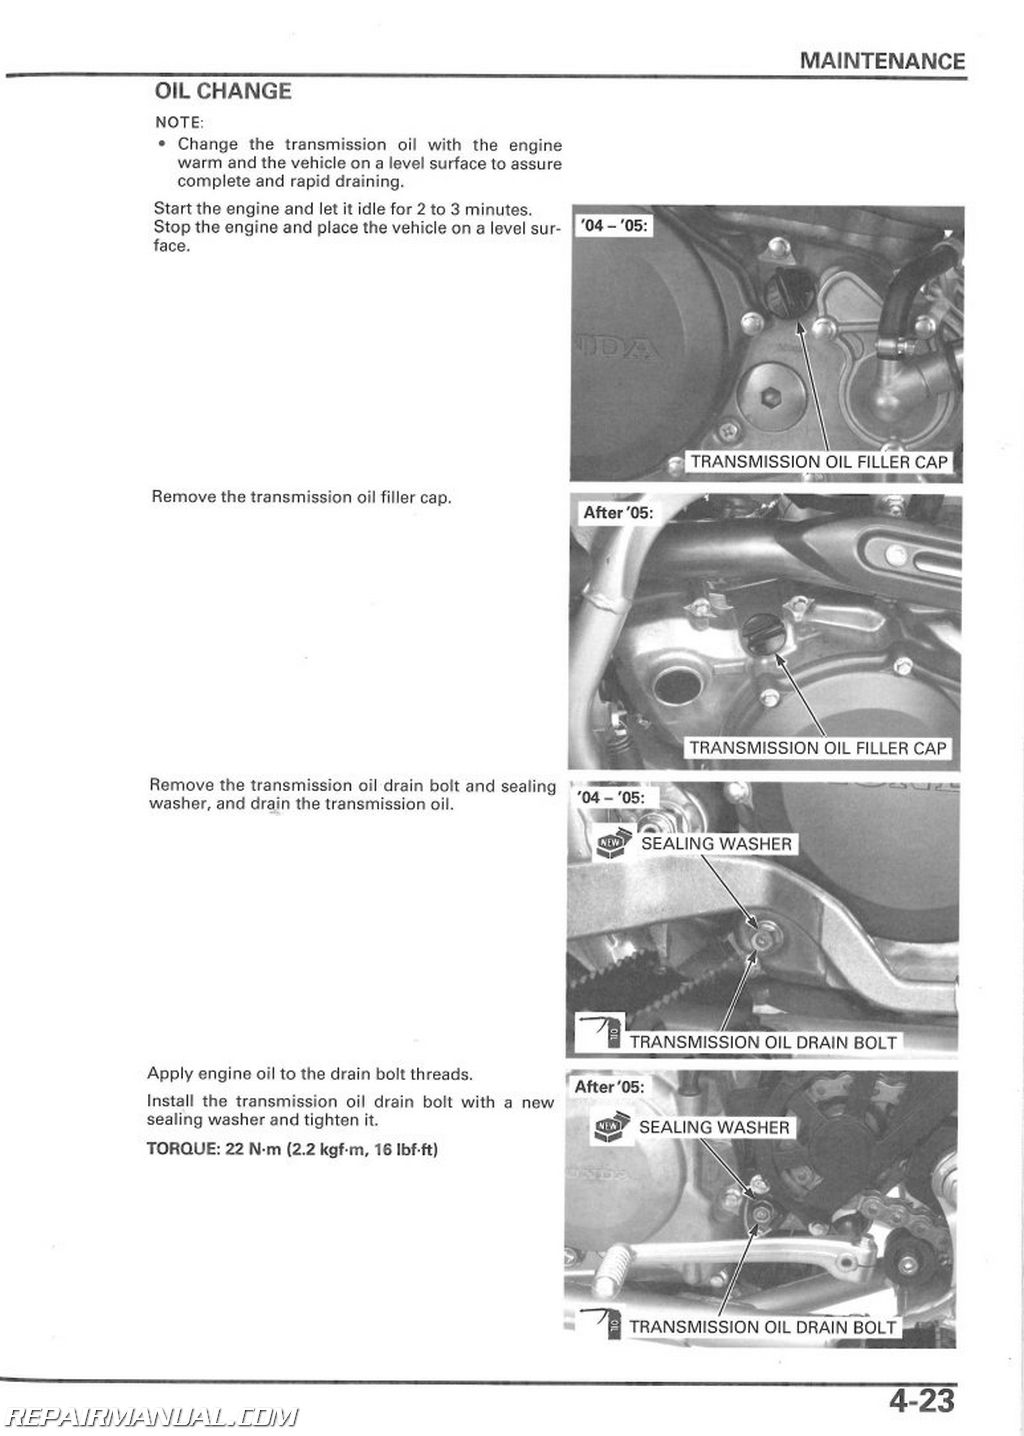 2004 2014 Honda TRX450R ER Sportrax ATV Service Manual page 3 100 [ yamaha rxz manual ] skoda fabia wiring diagram pdf wiring 2014 yamaha bolt wiring diagram at soozxer.org